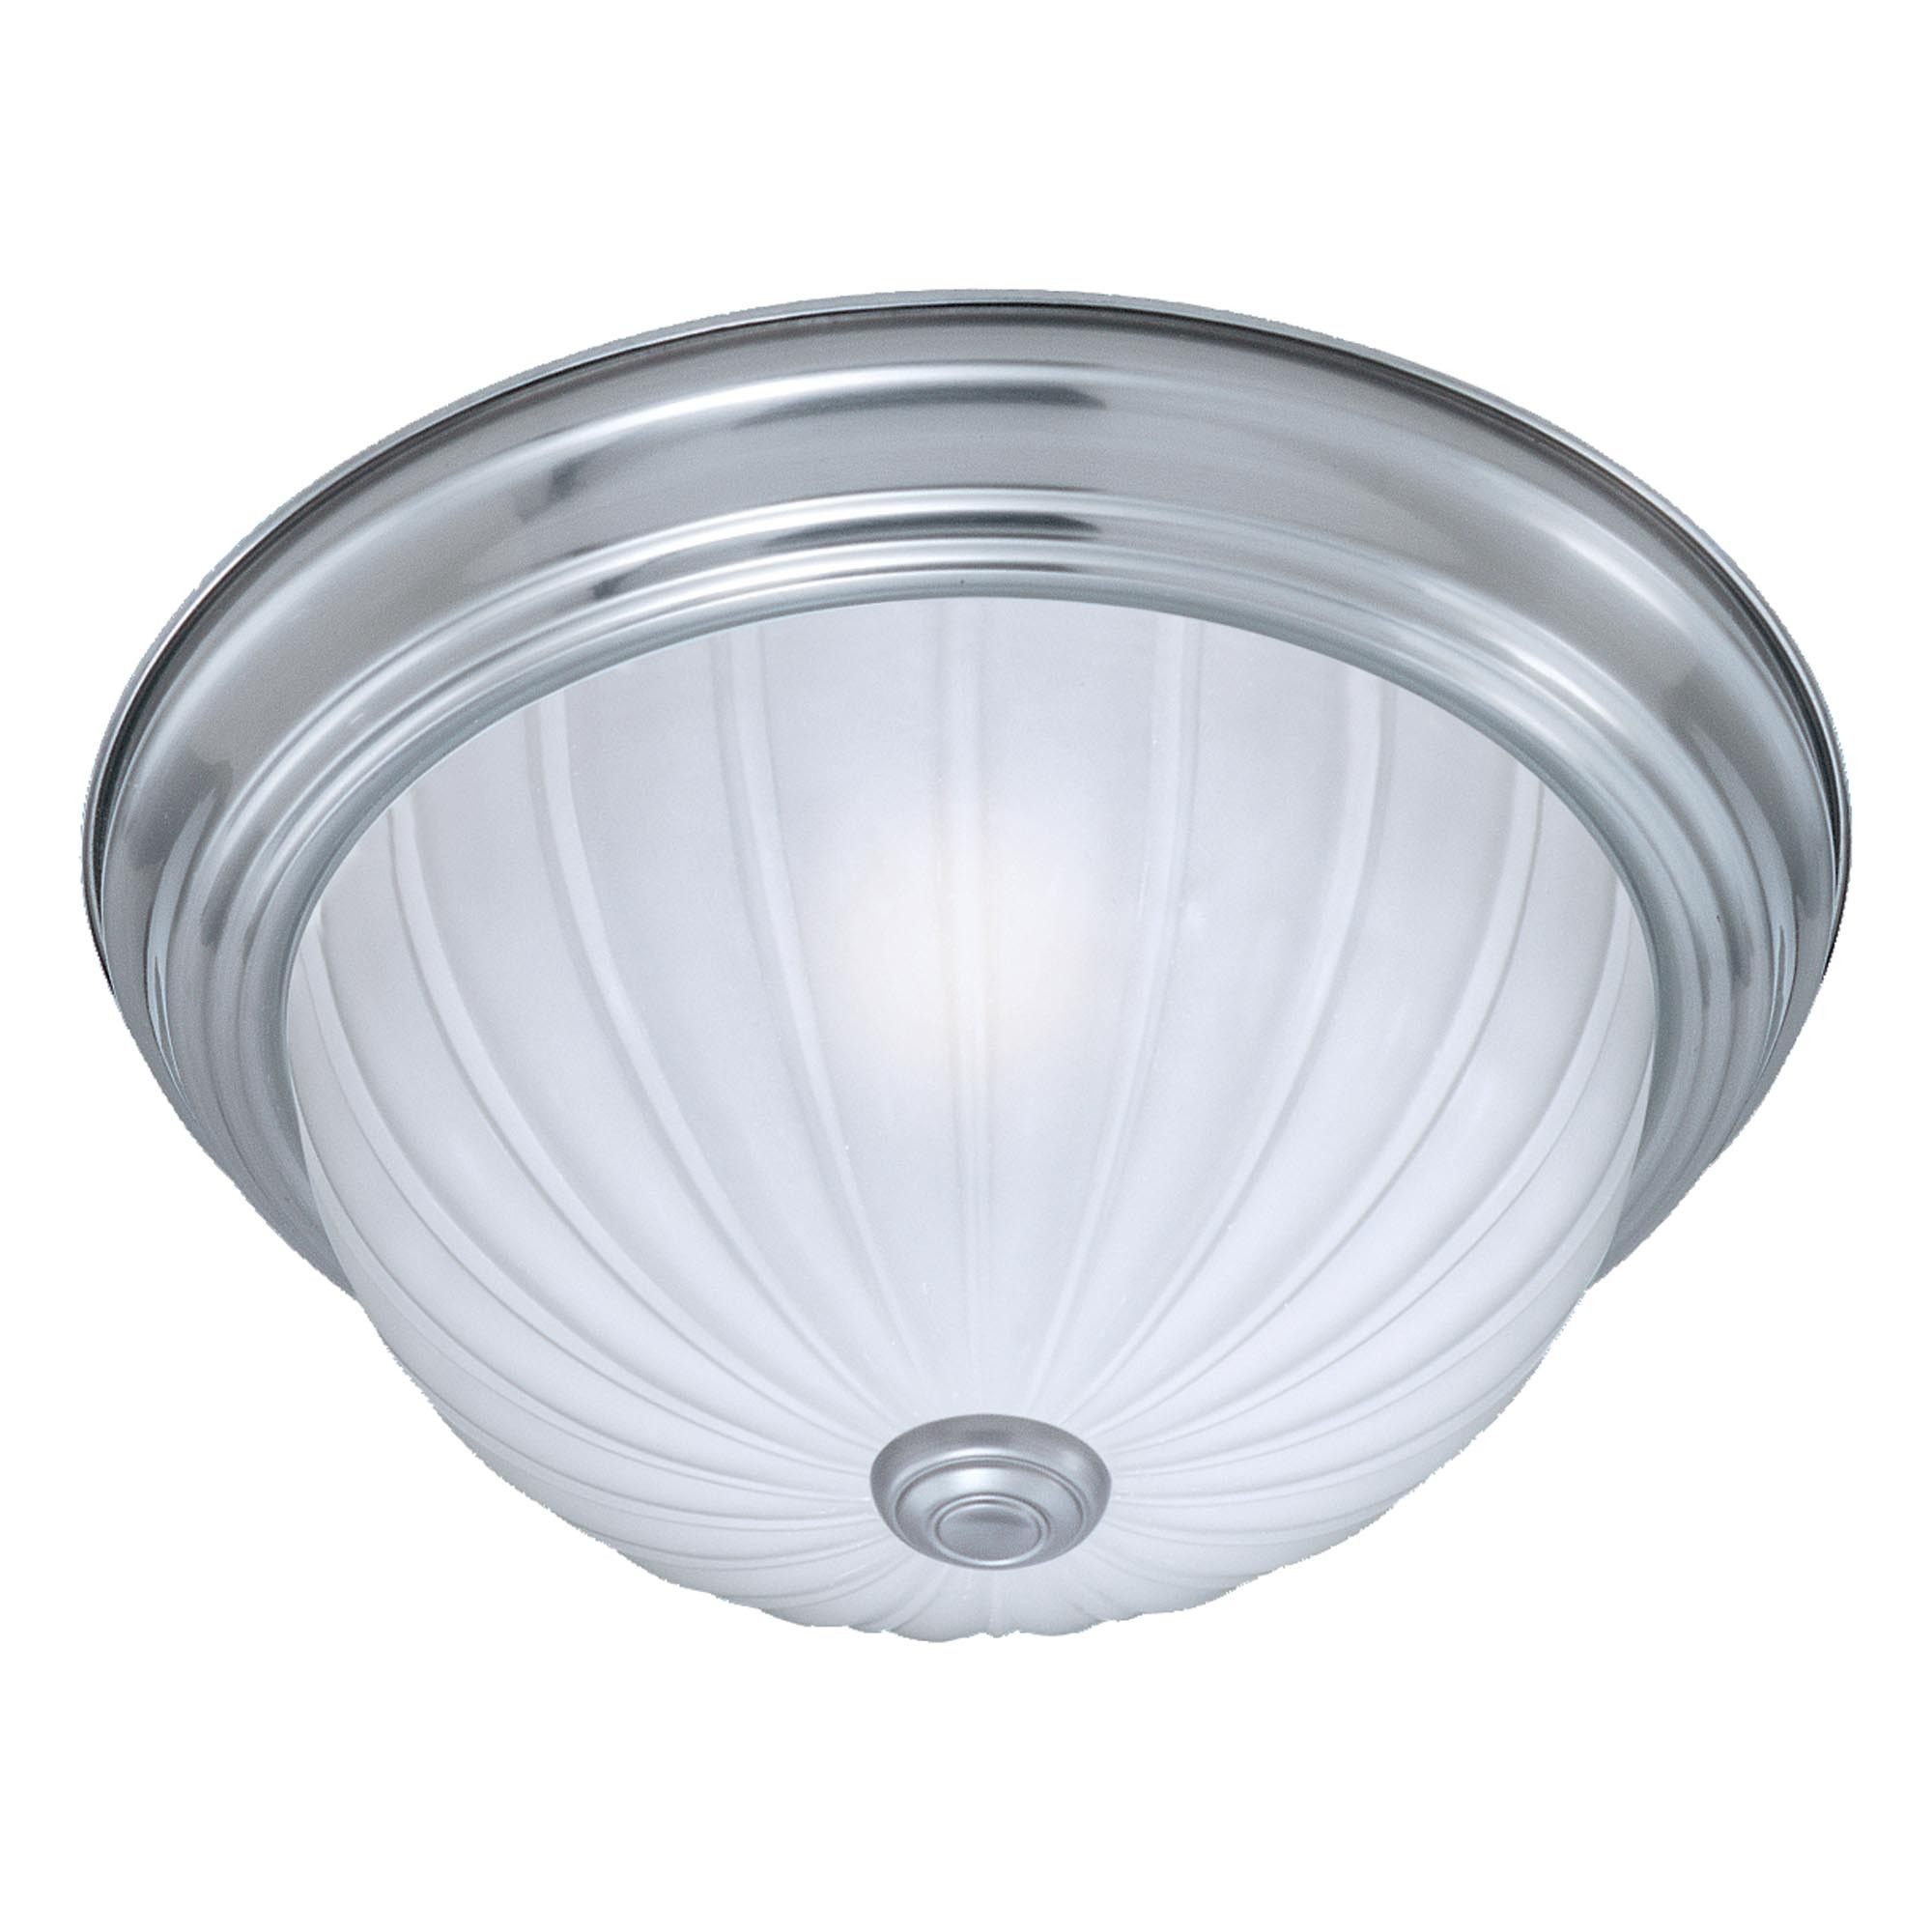 Types of ceiling light fixture httpcreativechairsandtables types of ceiling light fixture aloadofball Gallery